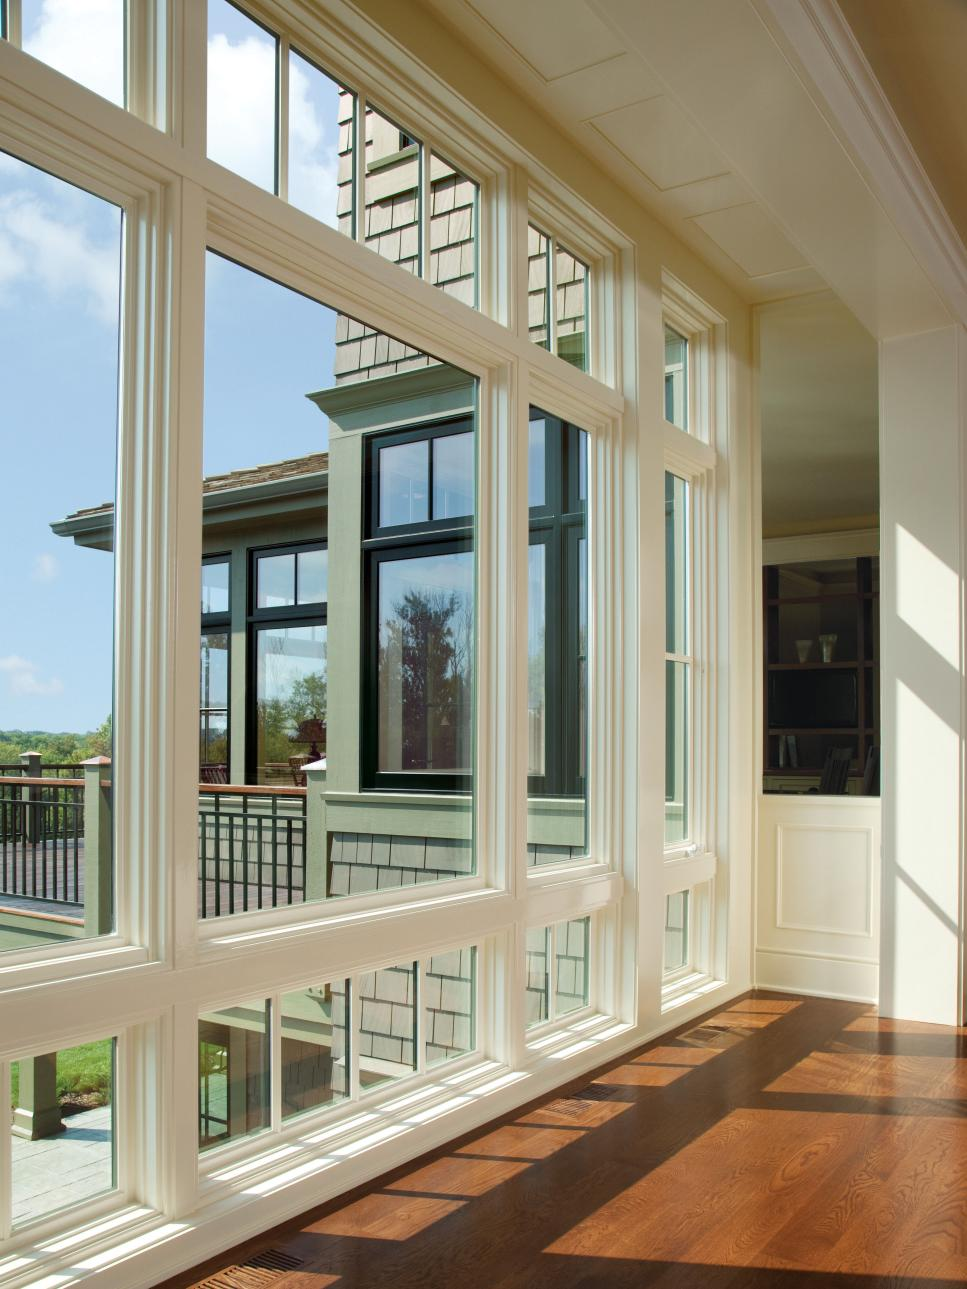 8 types of windows hgtv for Door and window design